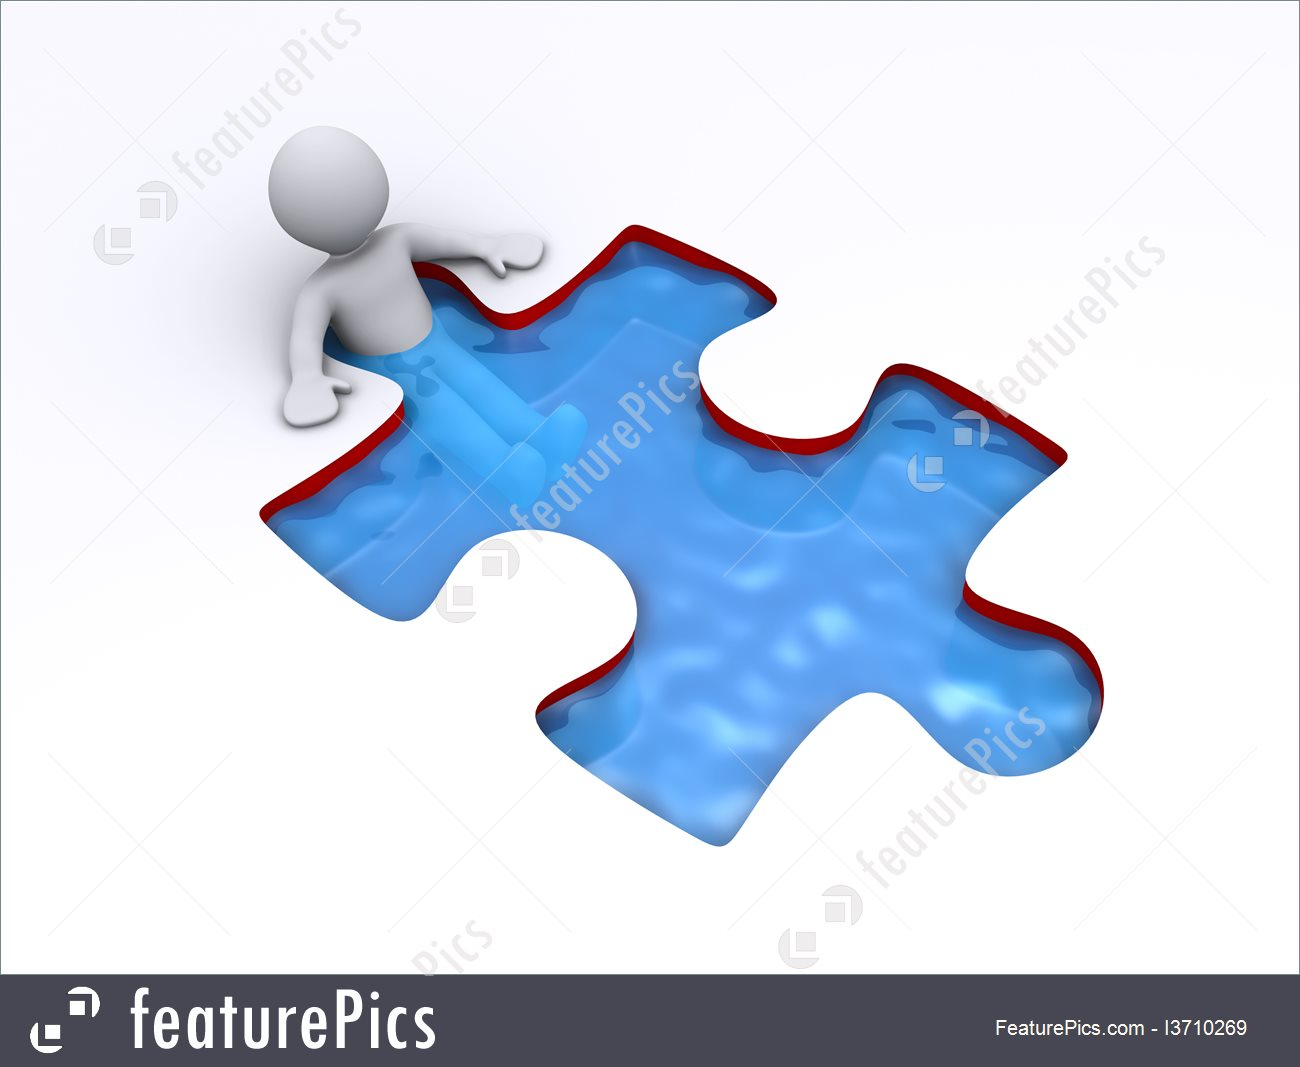 Illustration Of Person Is Successful Inside Puzzle Shaped Pool.